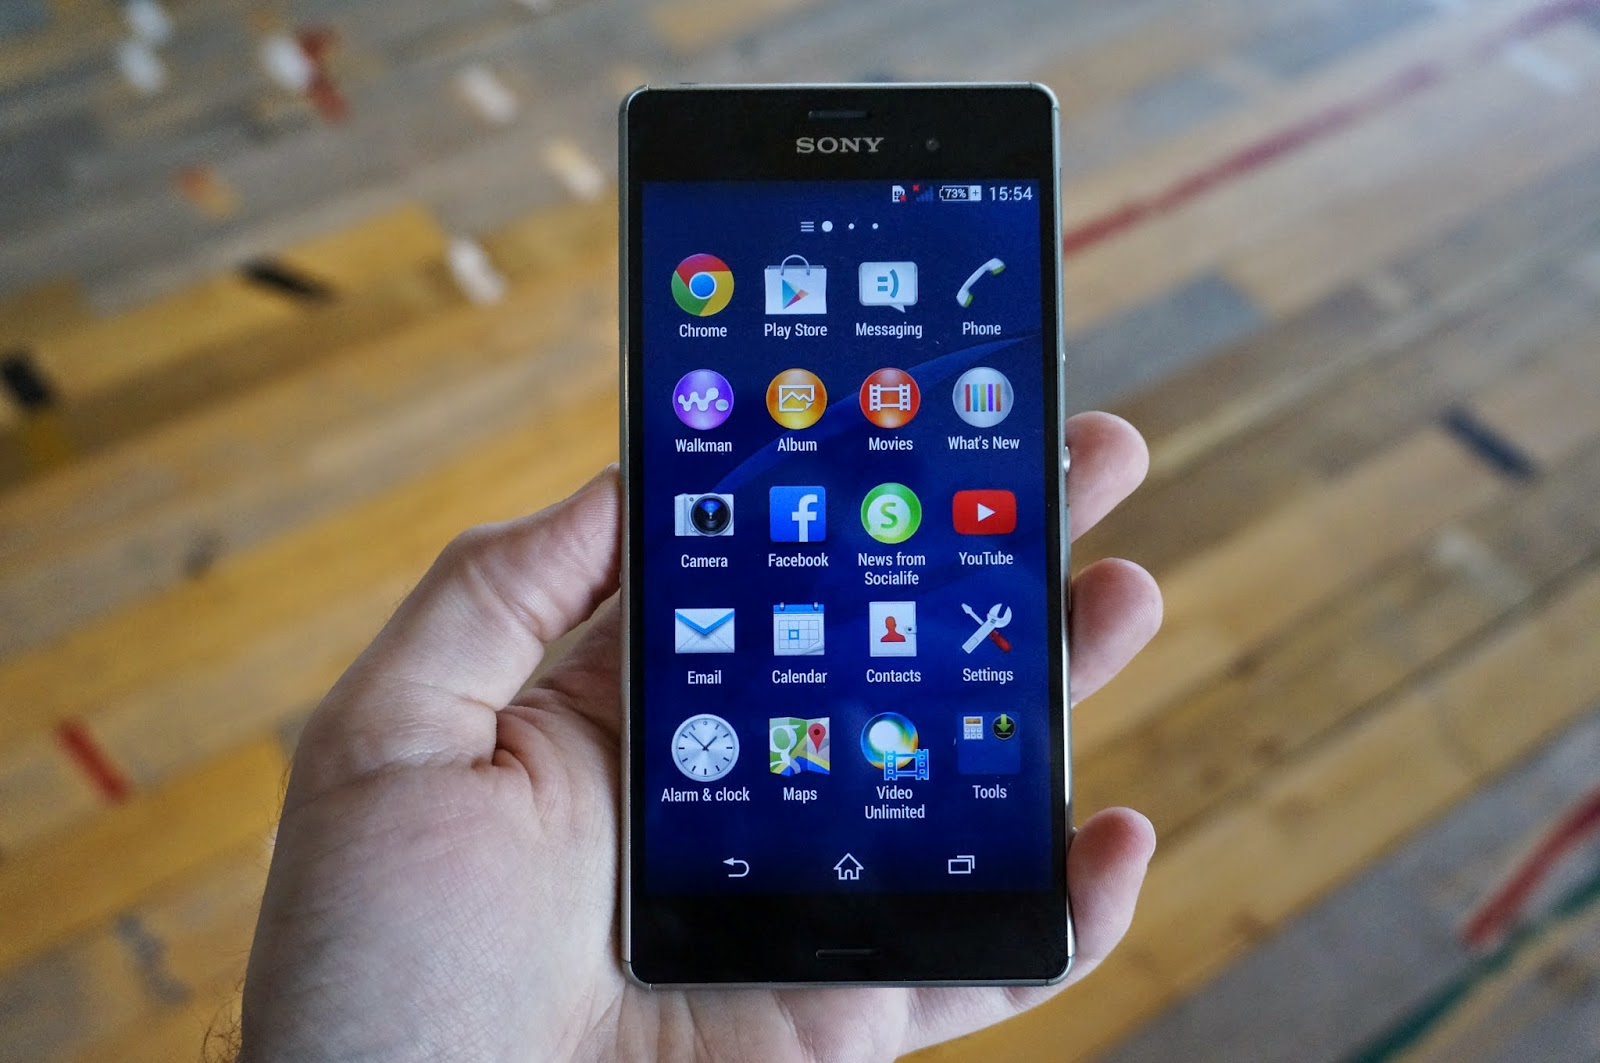 Sony Xperia Z3 Review: Smartphone with Rich Feature